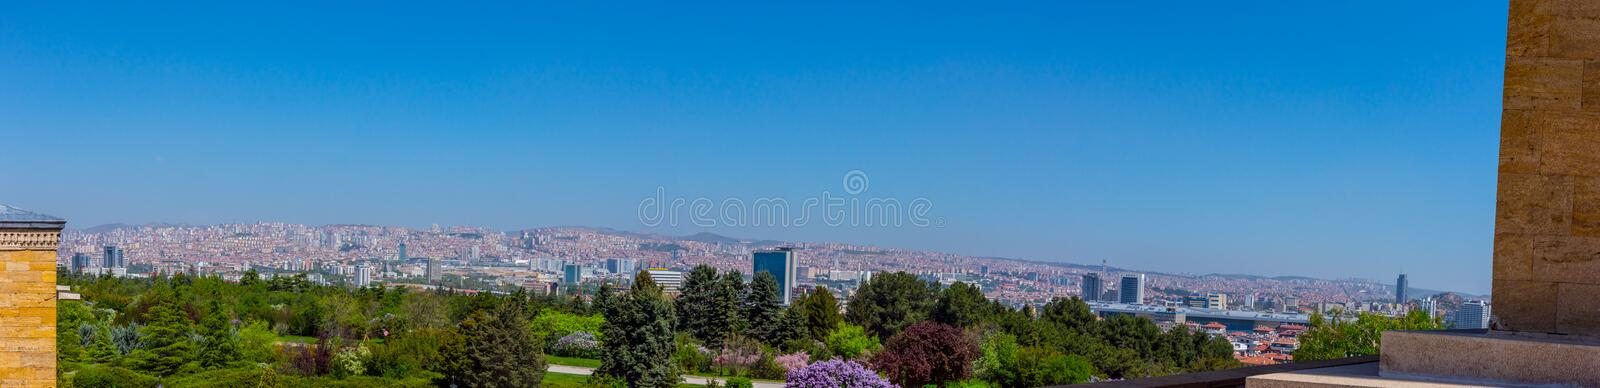 Panoramic view to the city of Ankara from the Memorial tomb royalty free stock photography